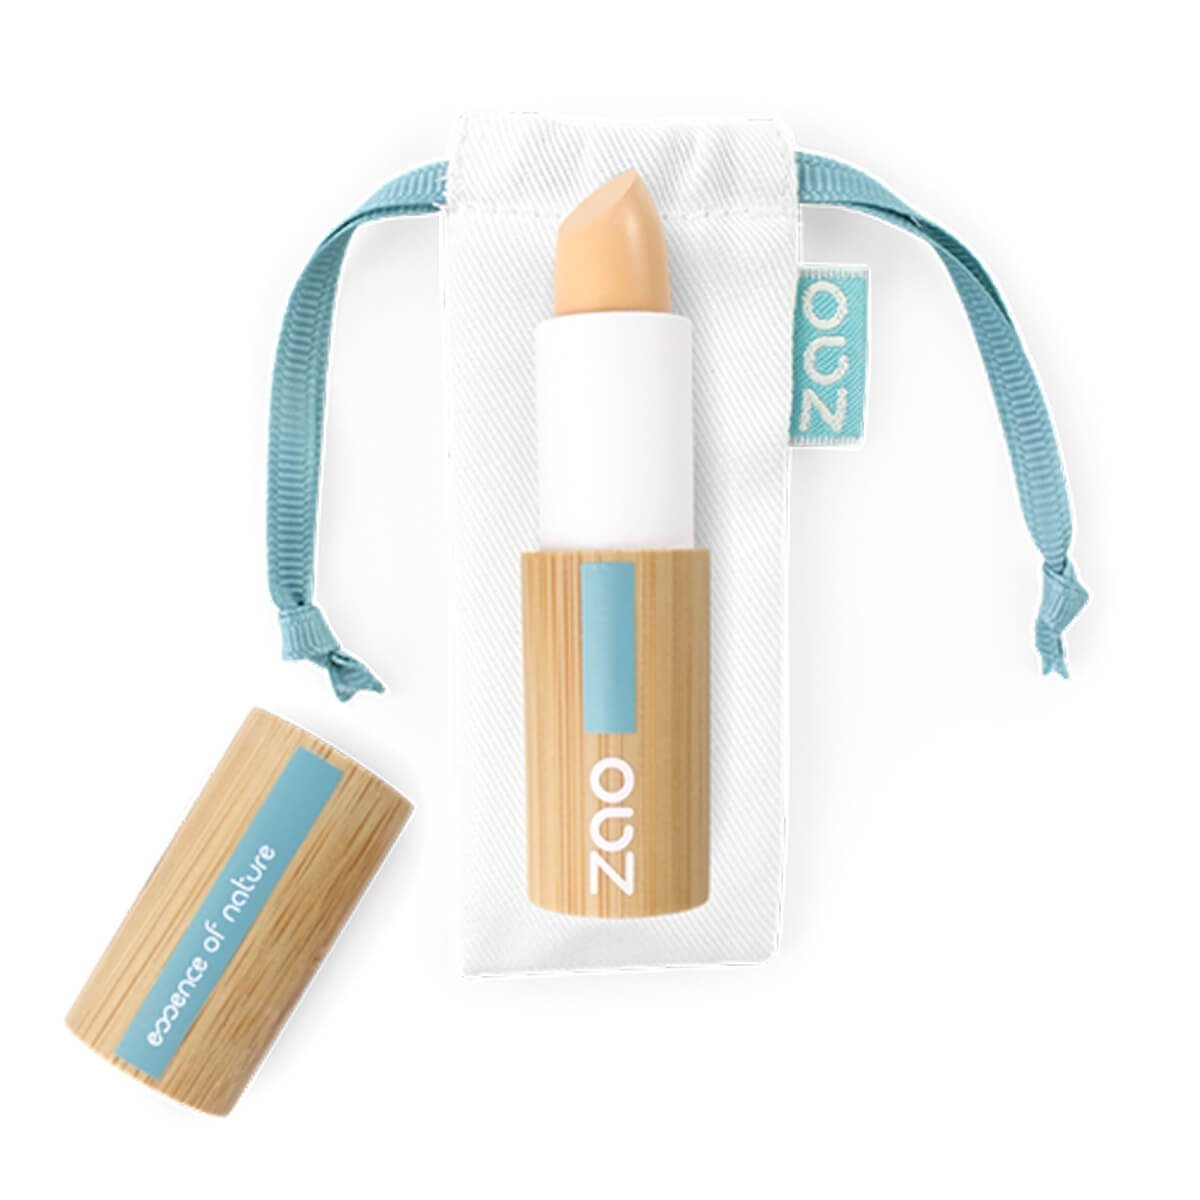 ZAO Bamboo Concealer Stick